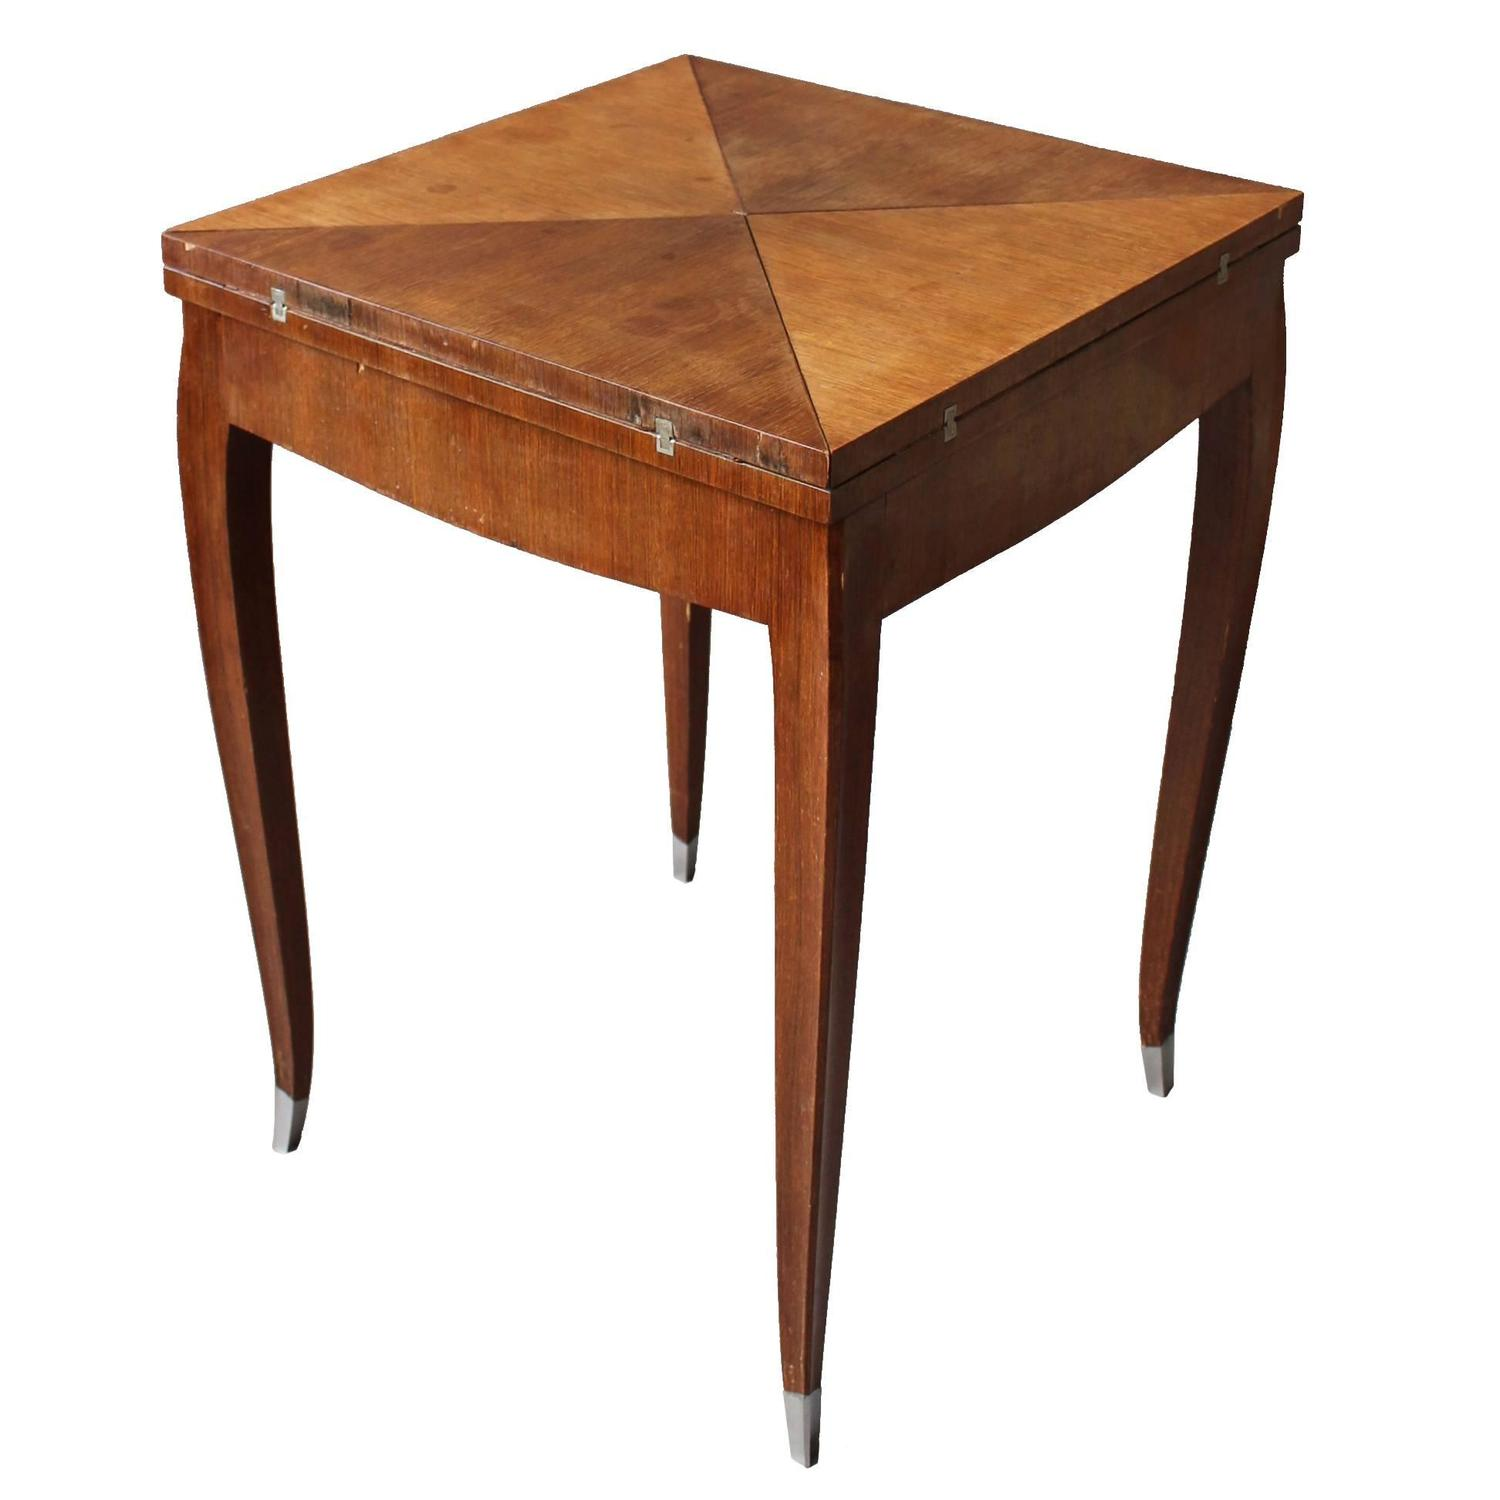 meldan furniture country french louis style triangle game accent table jeux mouchoir fine art deco rosewood envelope side dining room height duke pottery barn small metal bedside